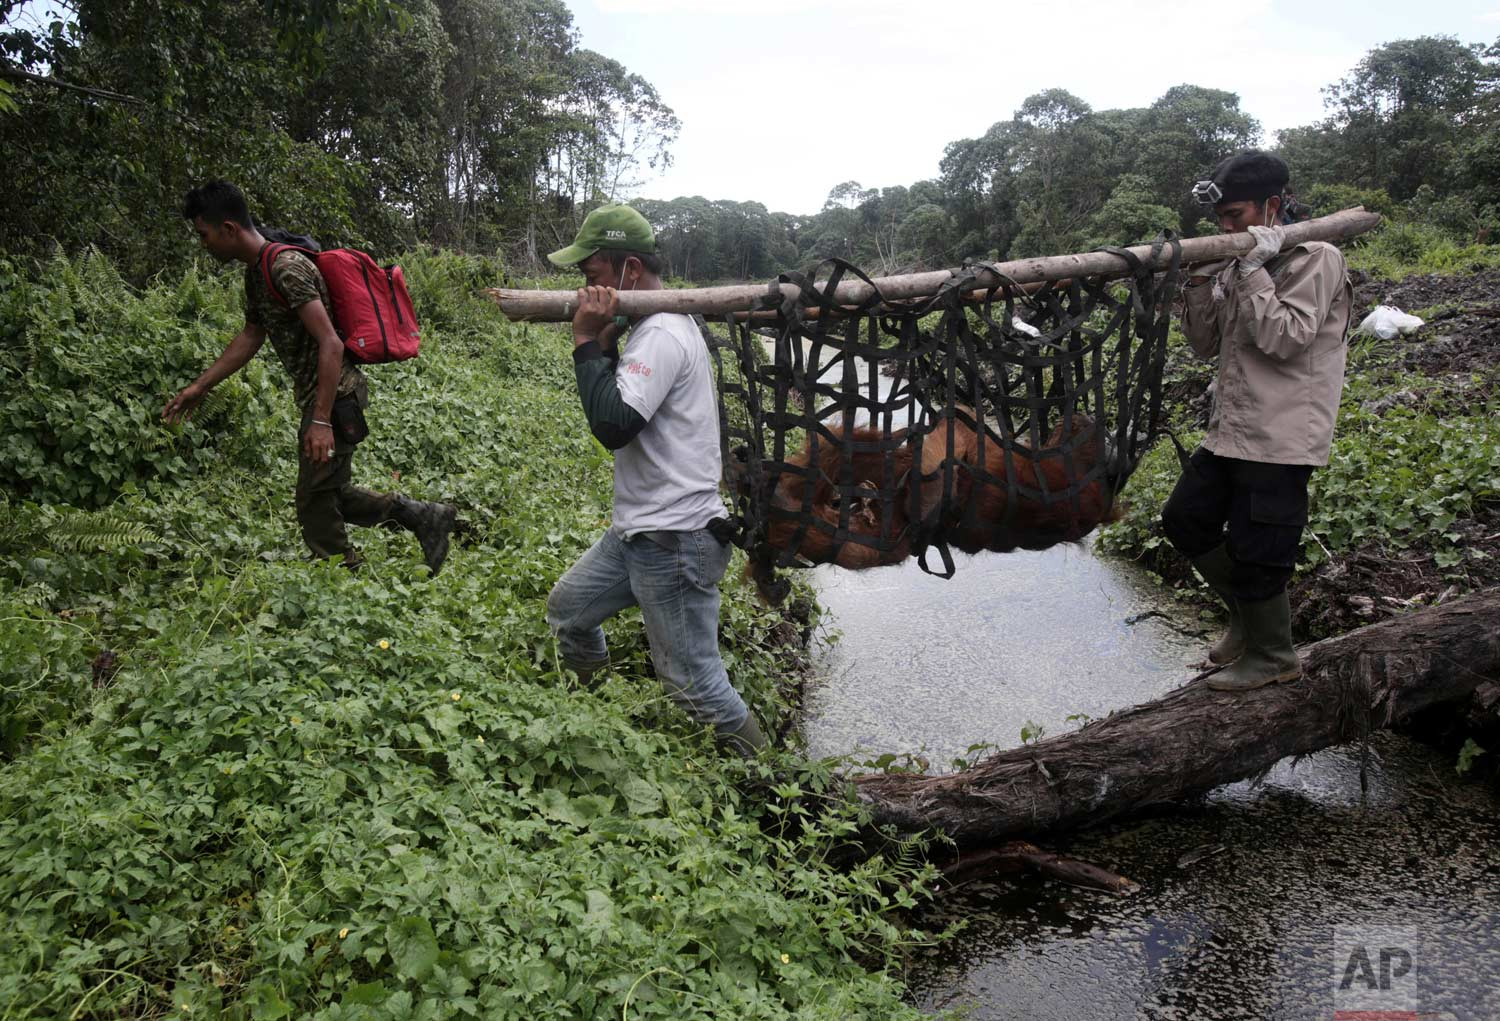 In this Thursday, Aug. 10, 2017 photo, conservationists of the Sumatran Orangutan Conservation Program (SOCP) use a makeshift stretcher to carry a tranquilized orangutan to be relocated from a swath of forest located too close to a palm oil plantation at Tripa peat swamp in Aceh province, Indonesia. (AP Photo/Binsar Bakkara)